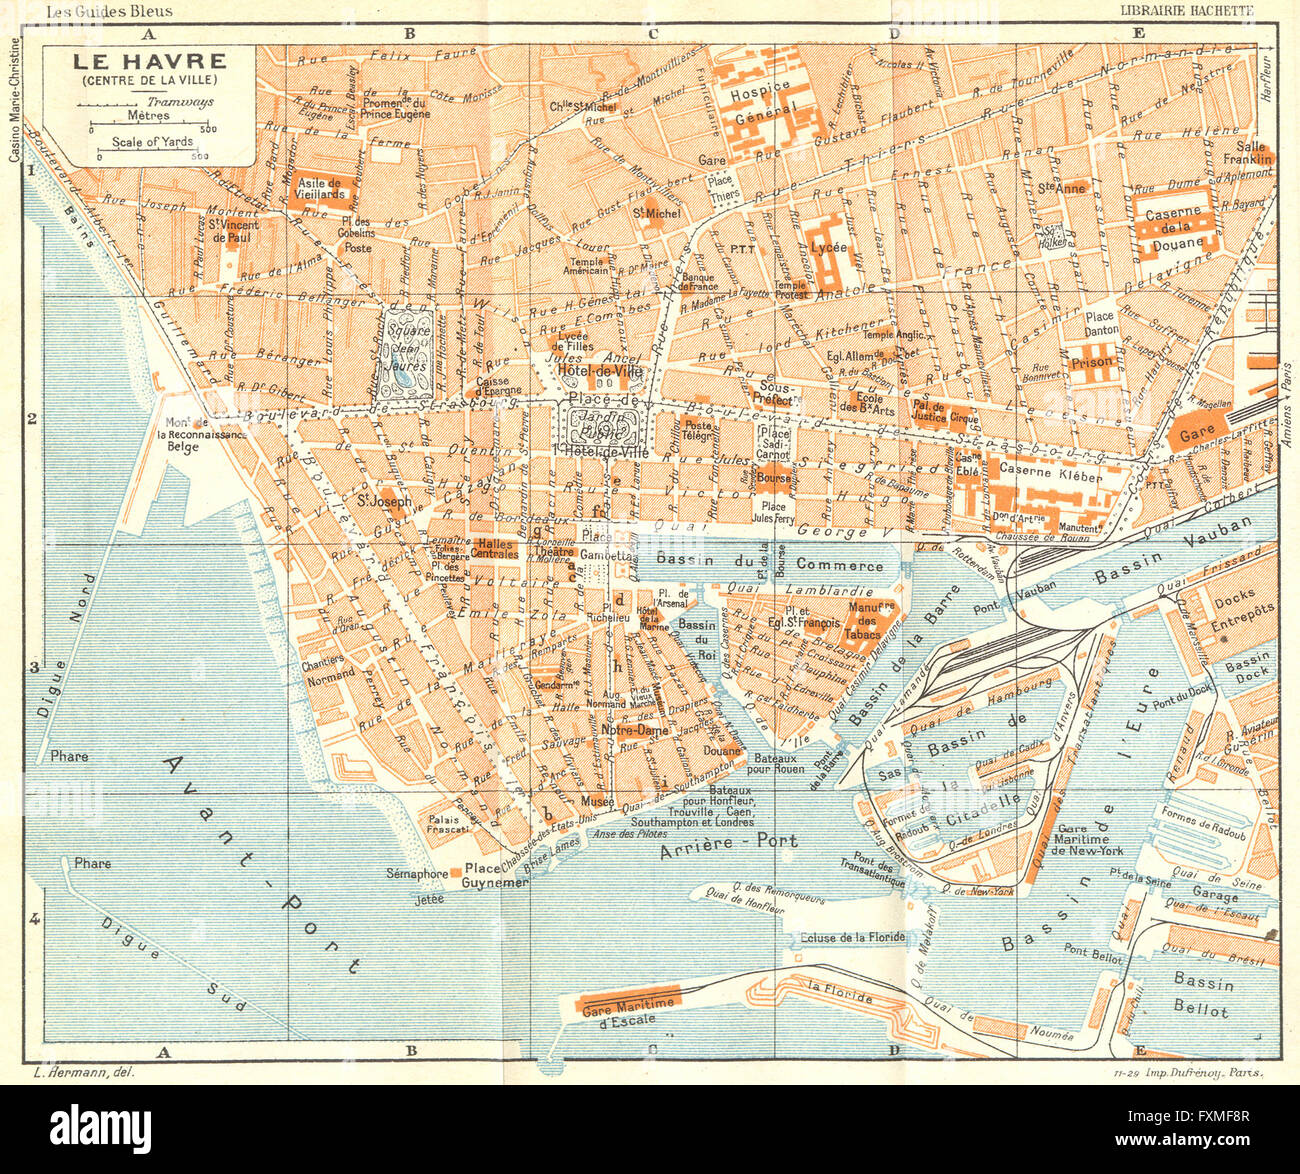 Map Of France Le Havre.France Le Havre 1932 Vintage Map Stock Photo 102483943 Alamy